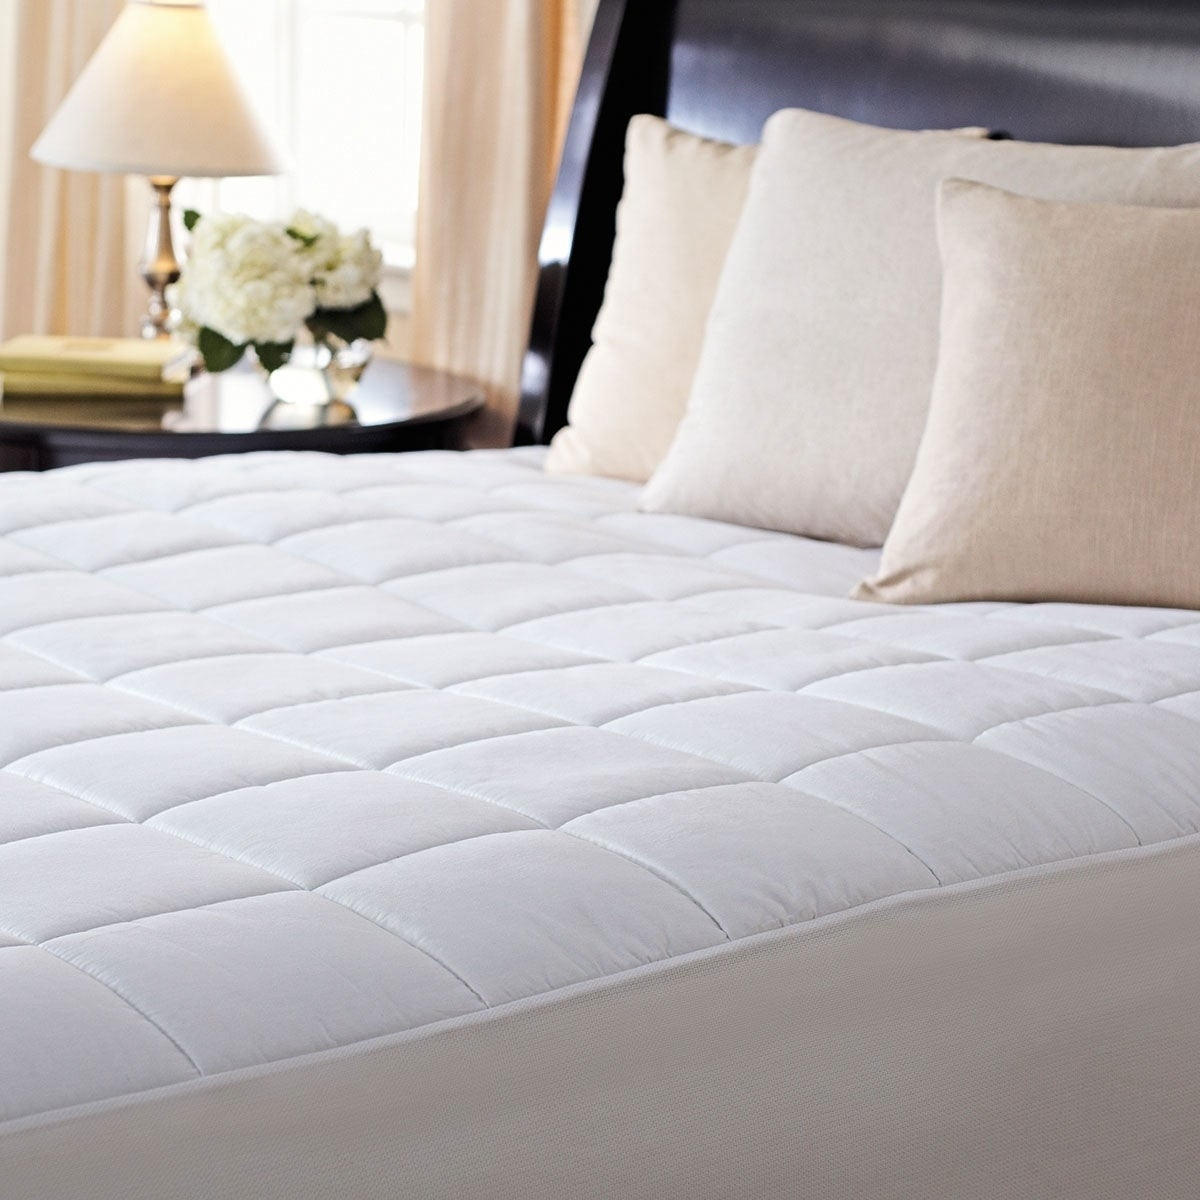 Shop Sunbeam Premium Quilted Heated Electric Mattress Pad